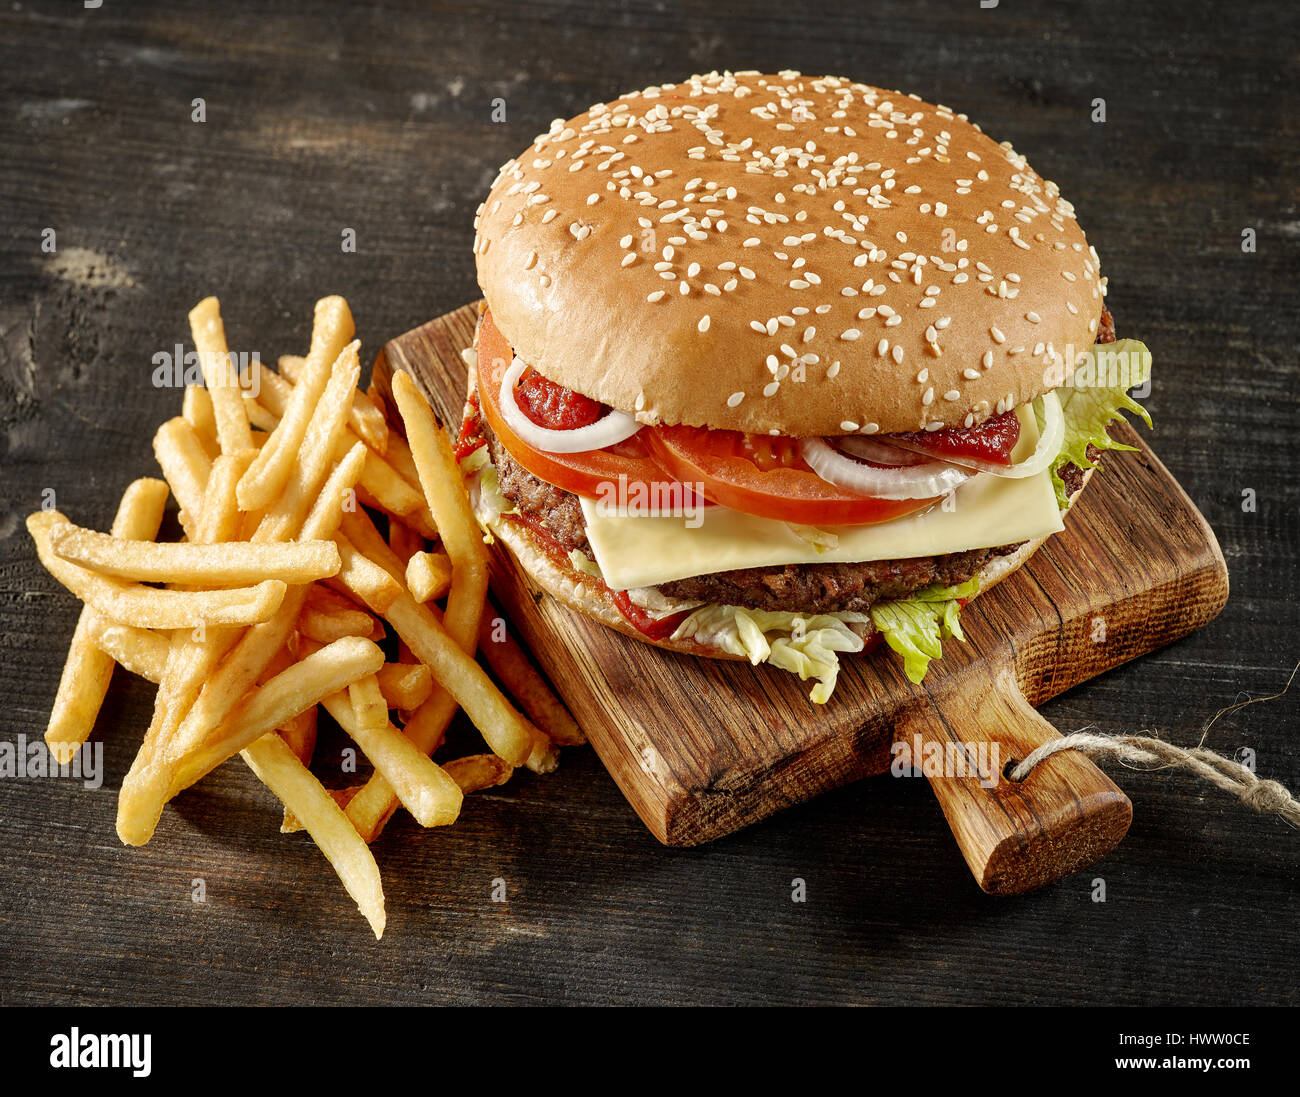 fresh tasty burger and fried potatoes on dark wooden table - Stock Image